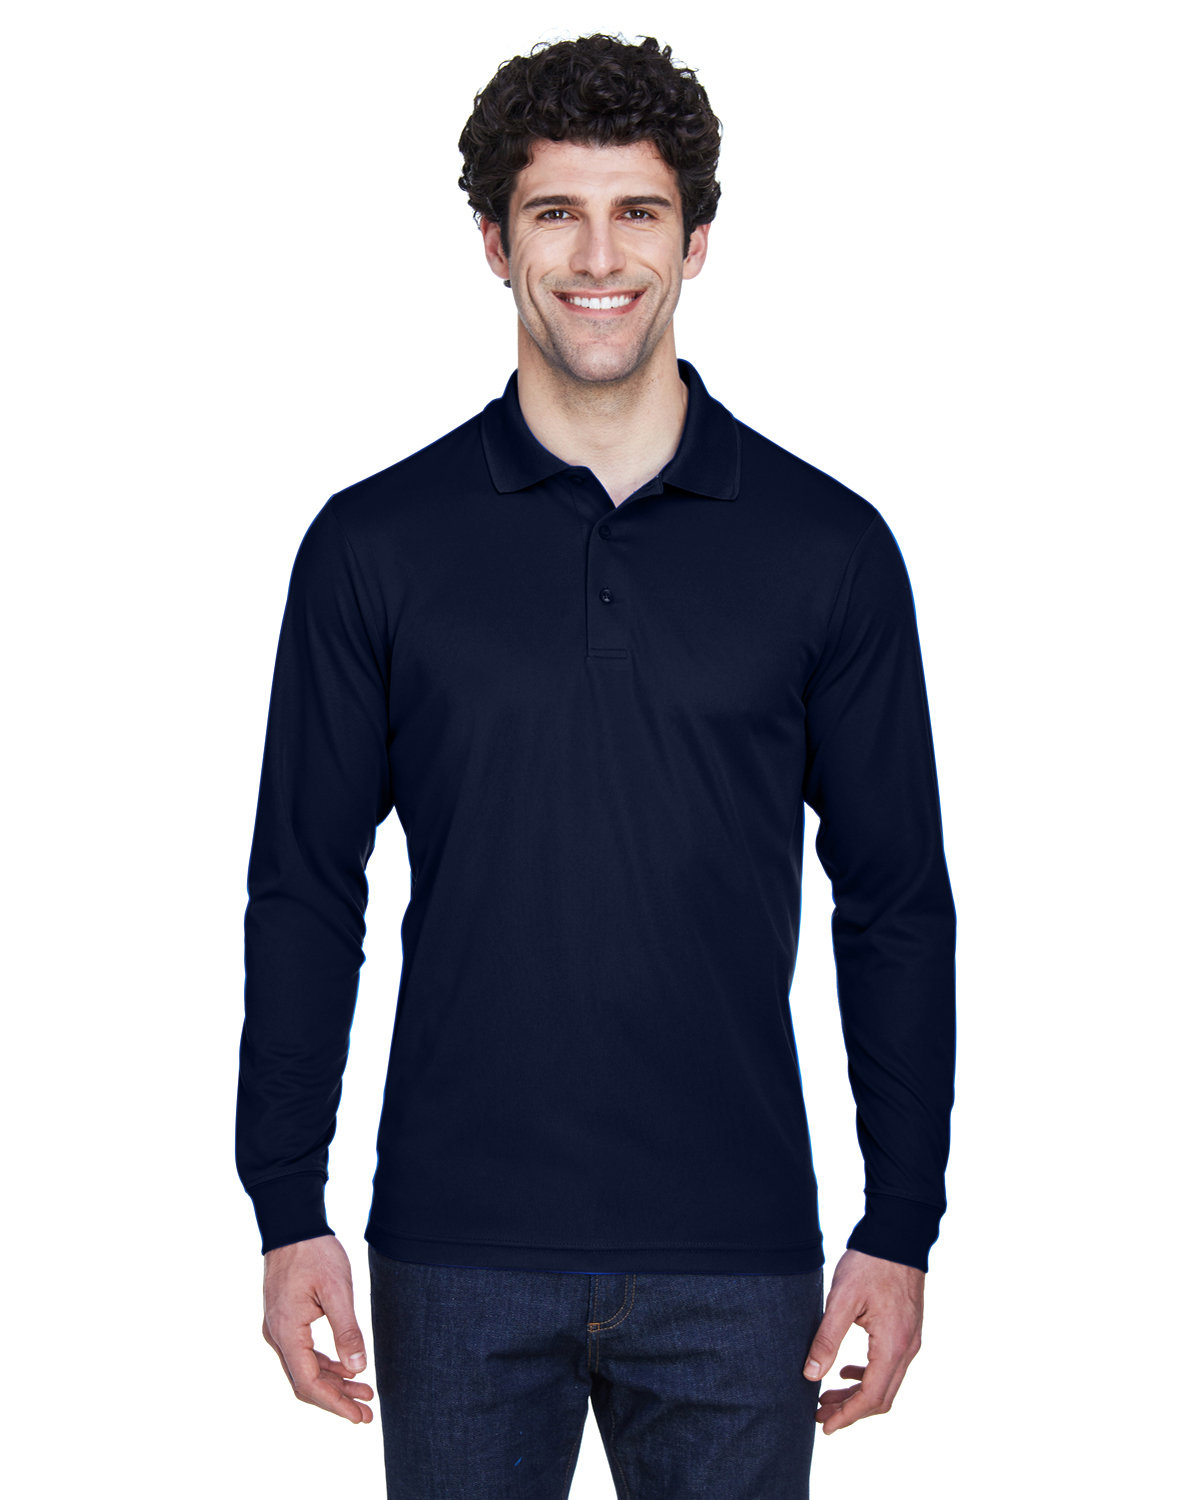 Core 365 Men's Tall Pinnacle Performance Long-Sleeve Piqué Polo CLASSIC NAVY